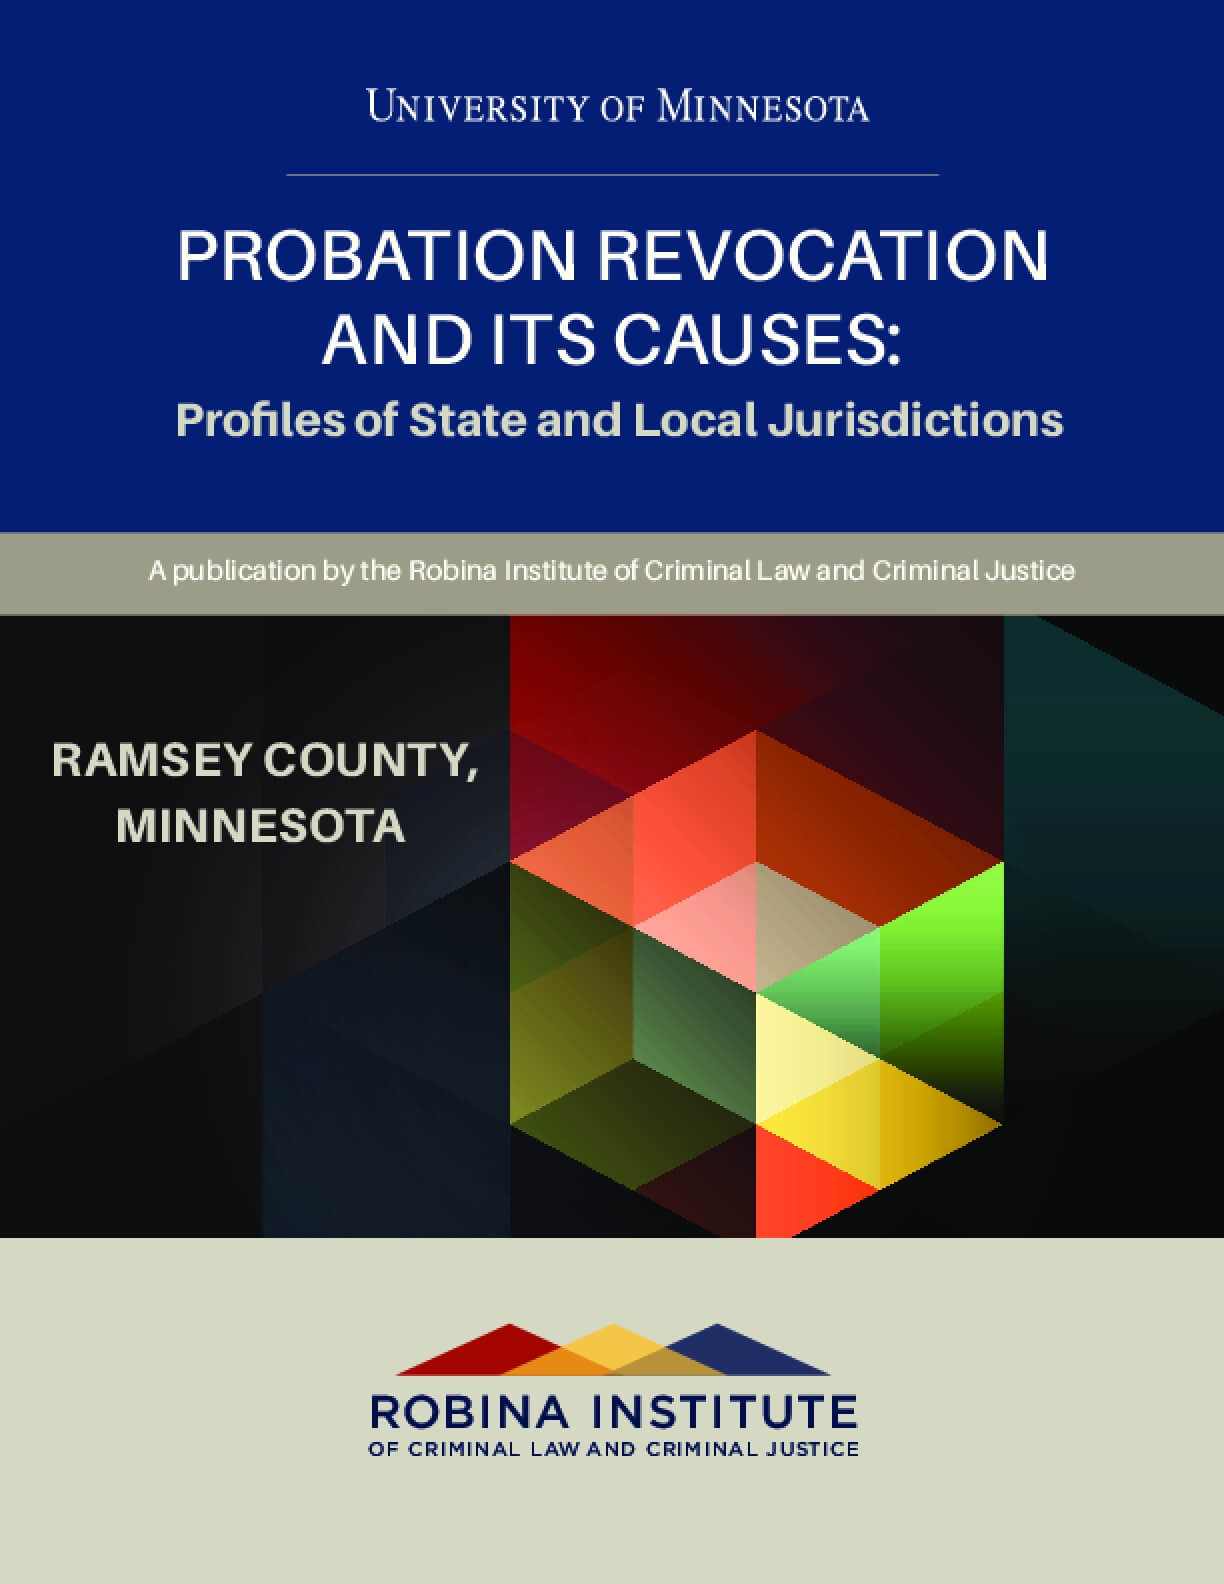 Probation Revocation and Its Causes: Profiles of State and Local Jurisdictions, Ramsey County, Minnesota